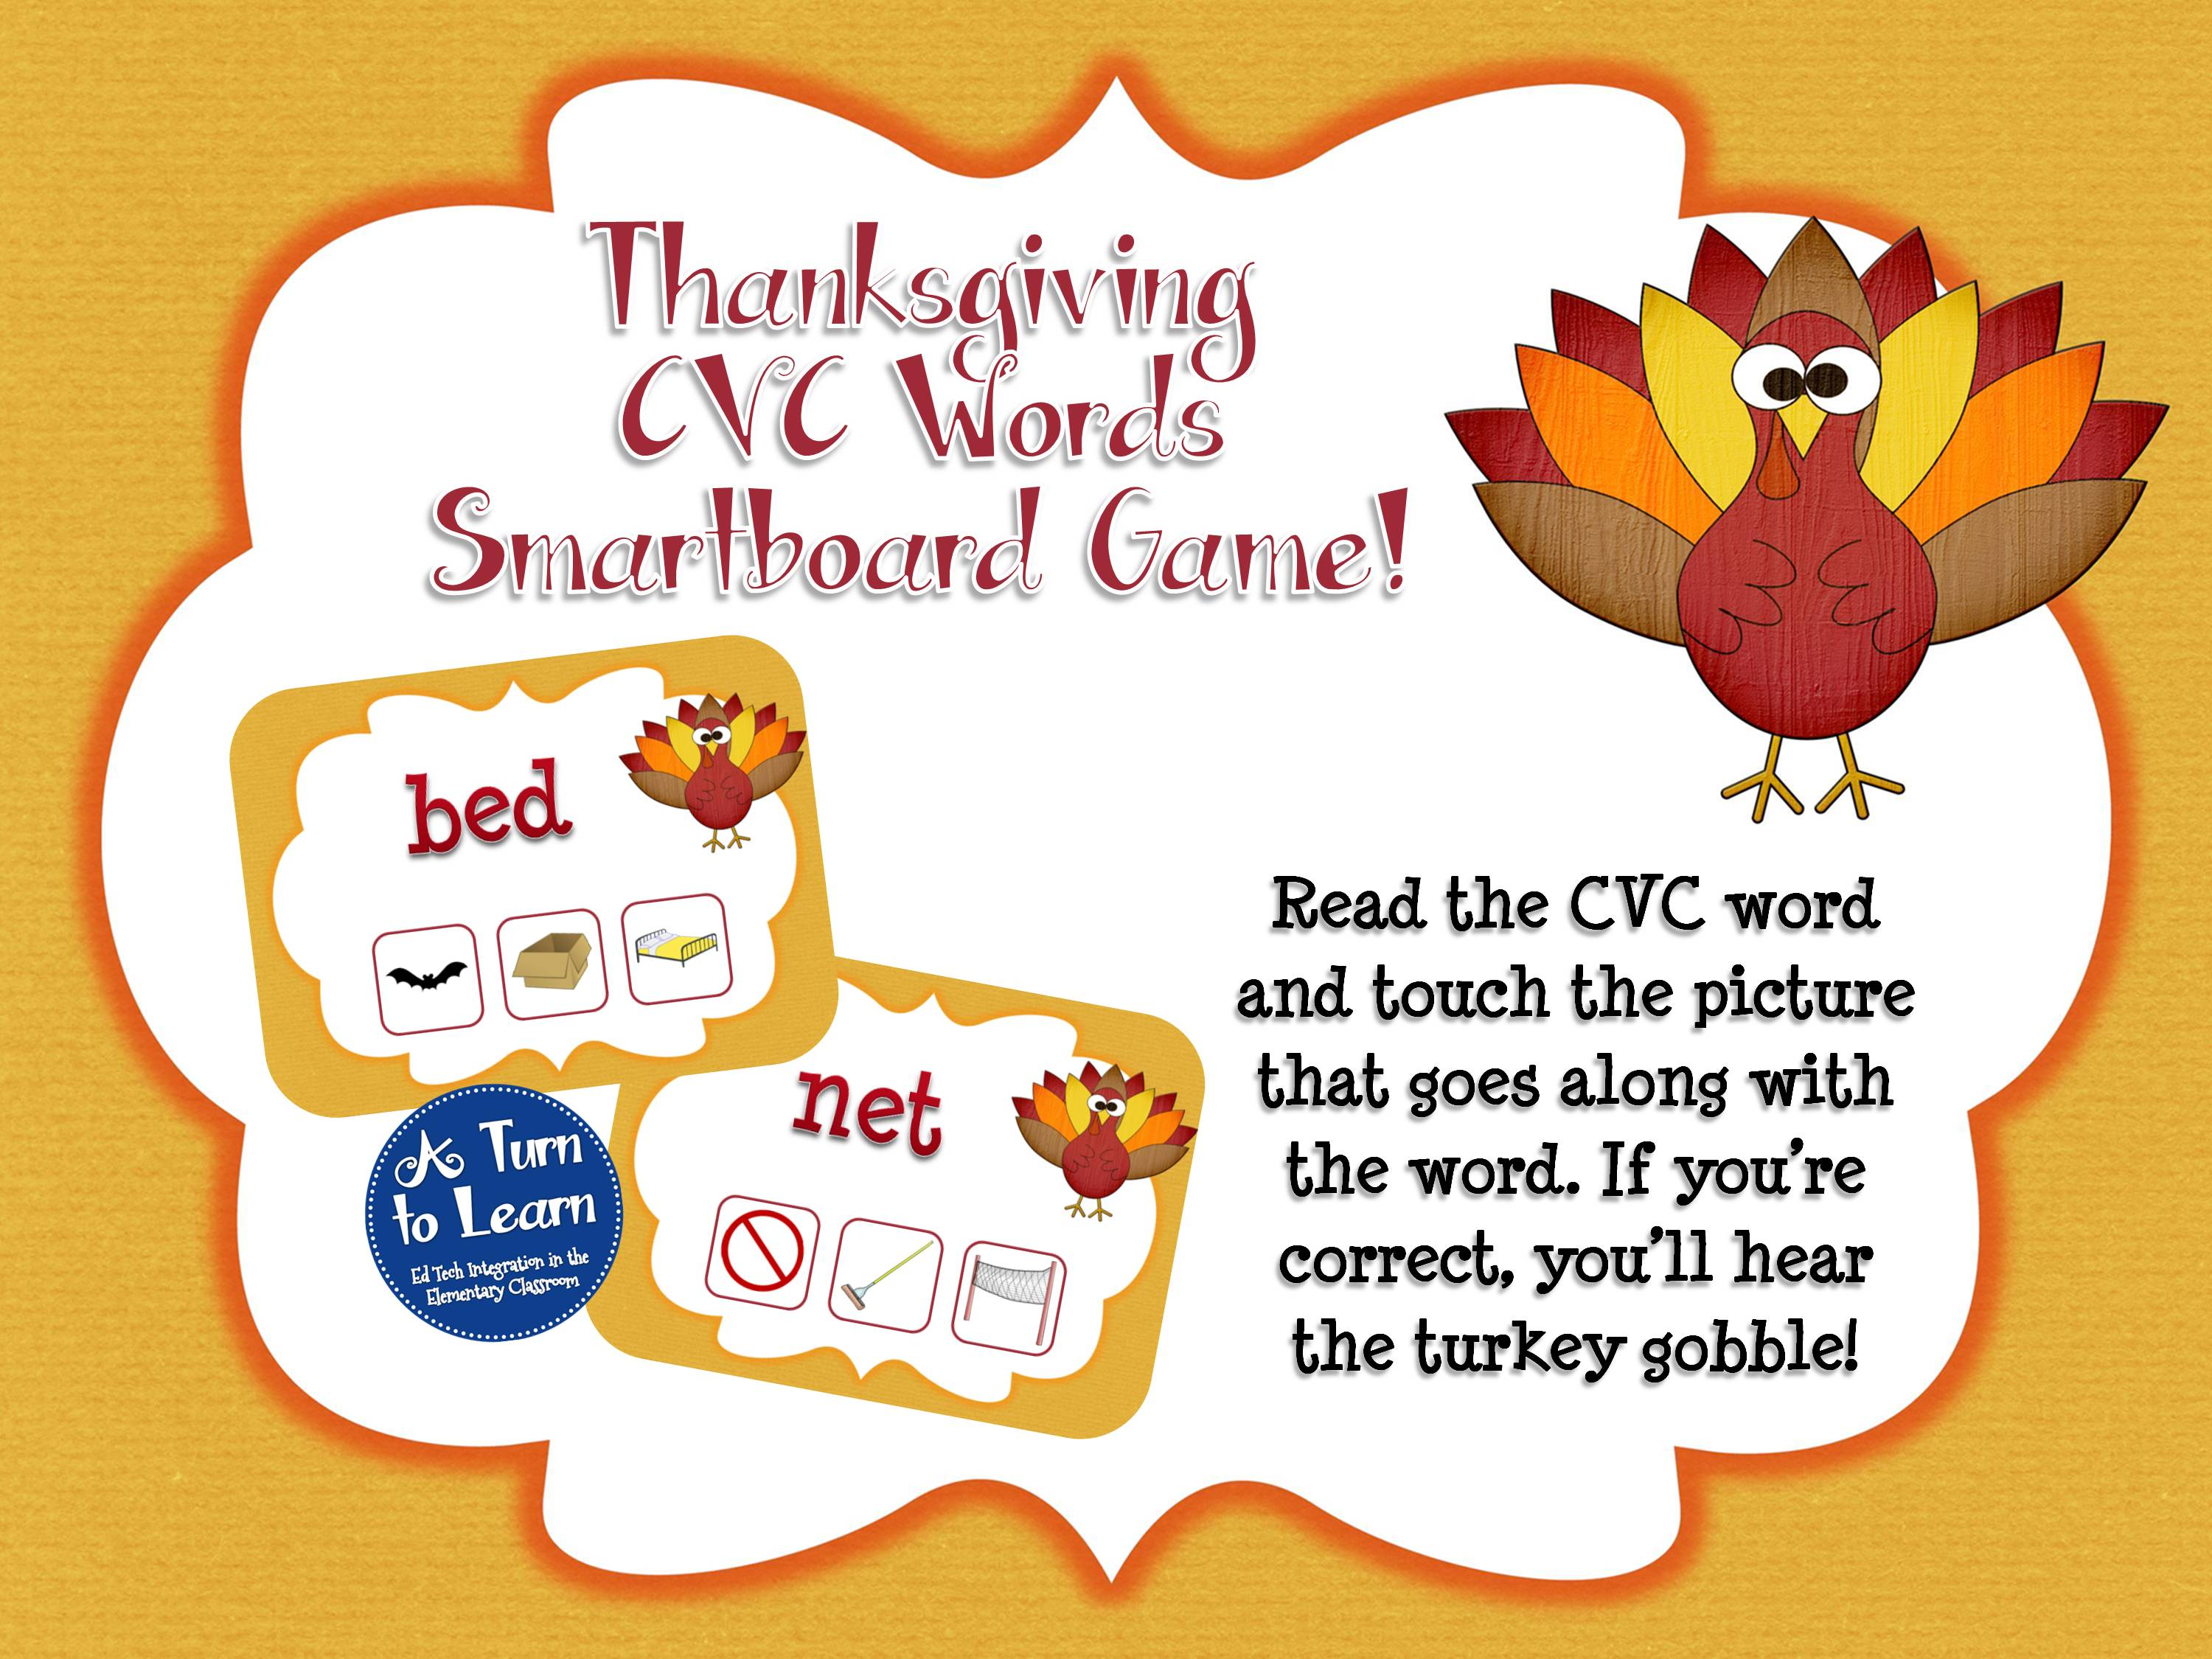 Thanksgiving themed smartboard game for reading CVC words